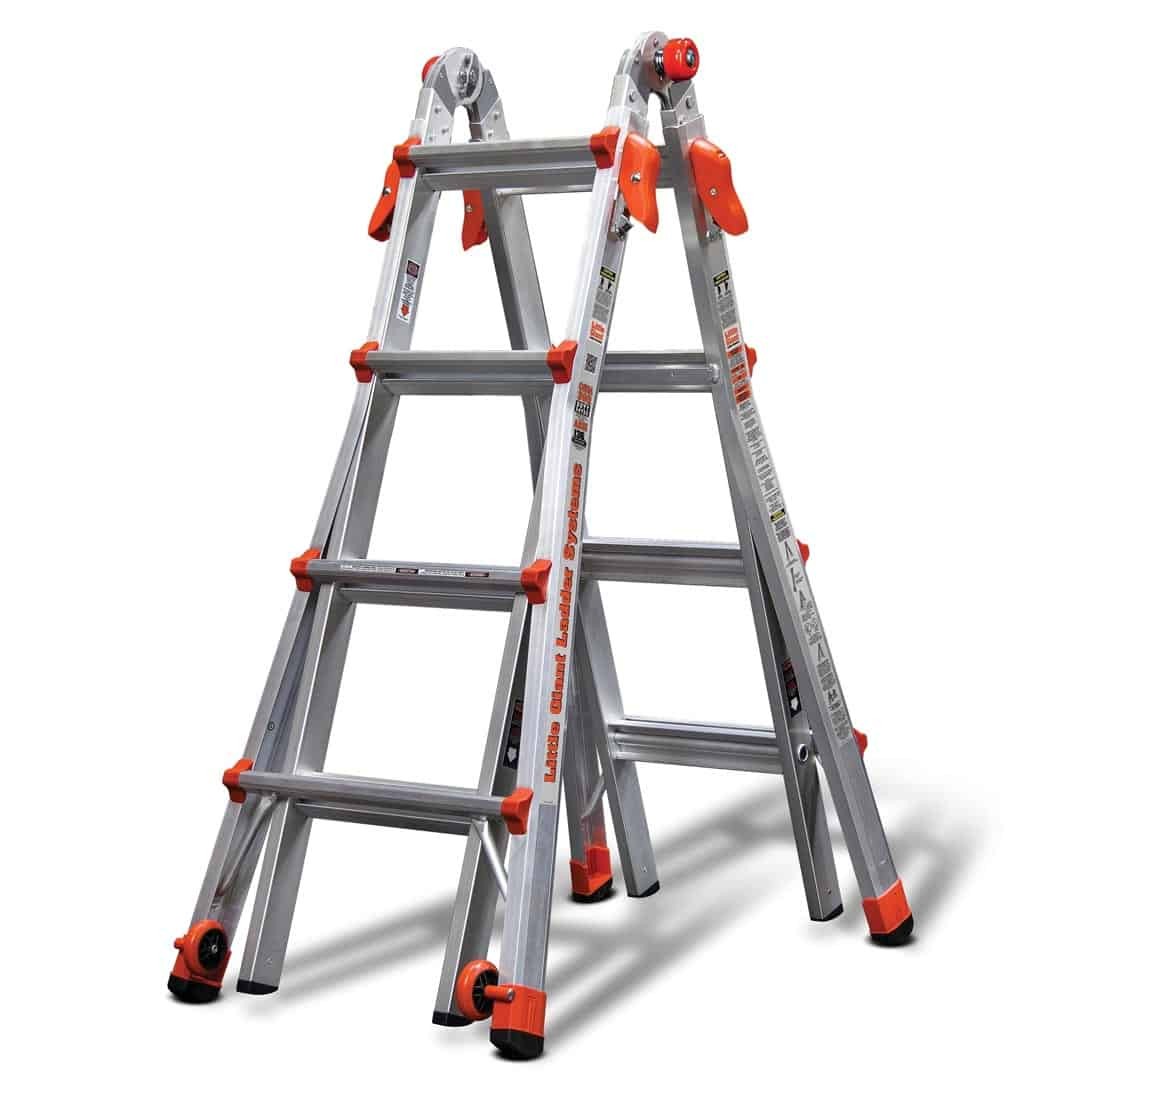 Articulated Folding Ladders